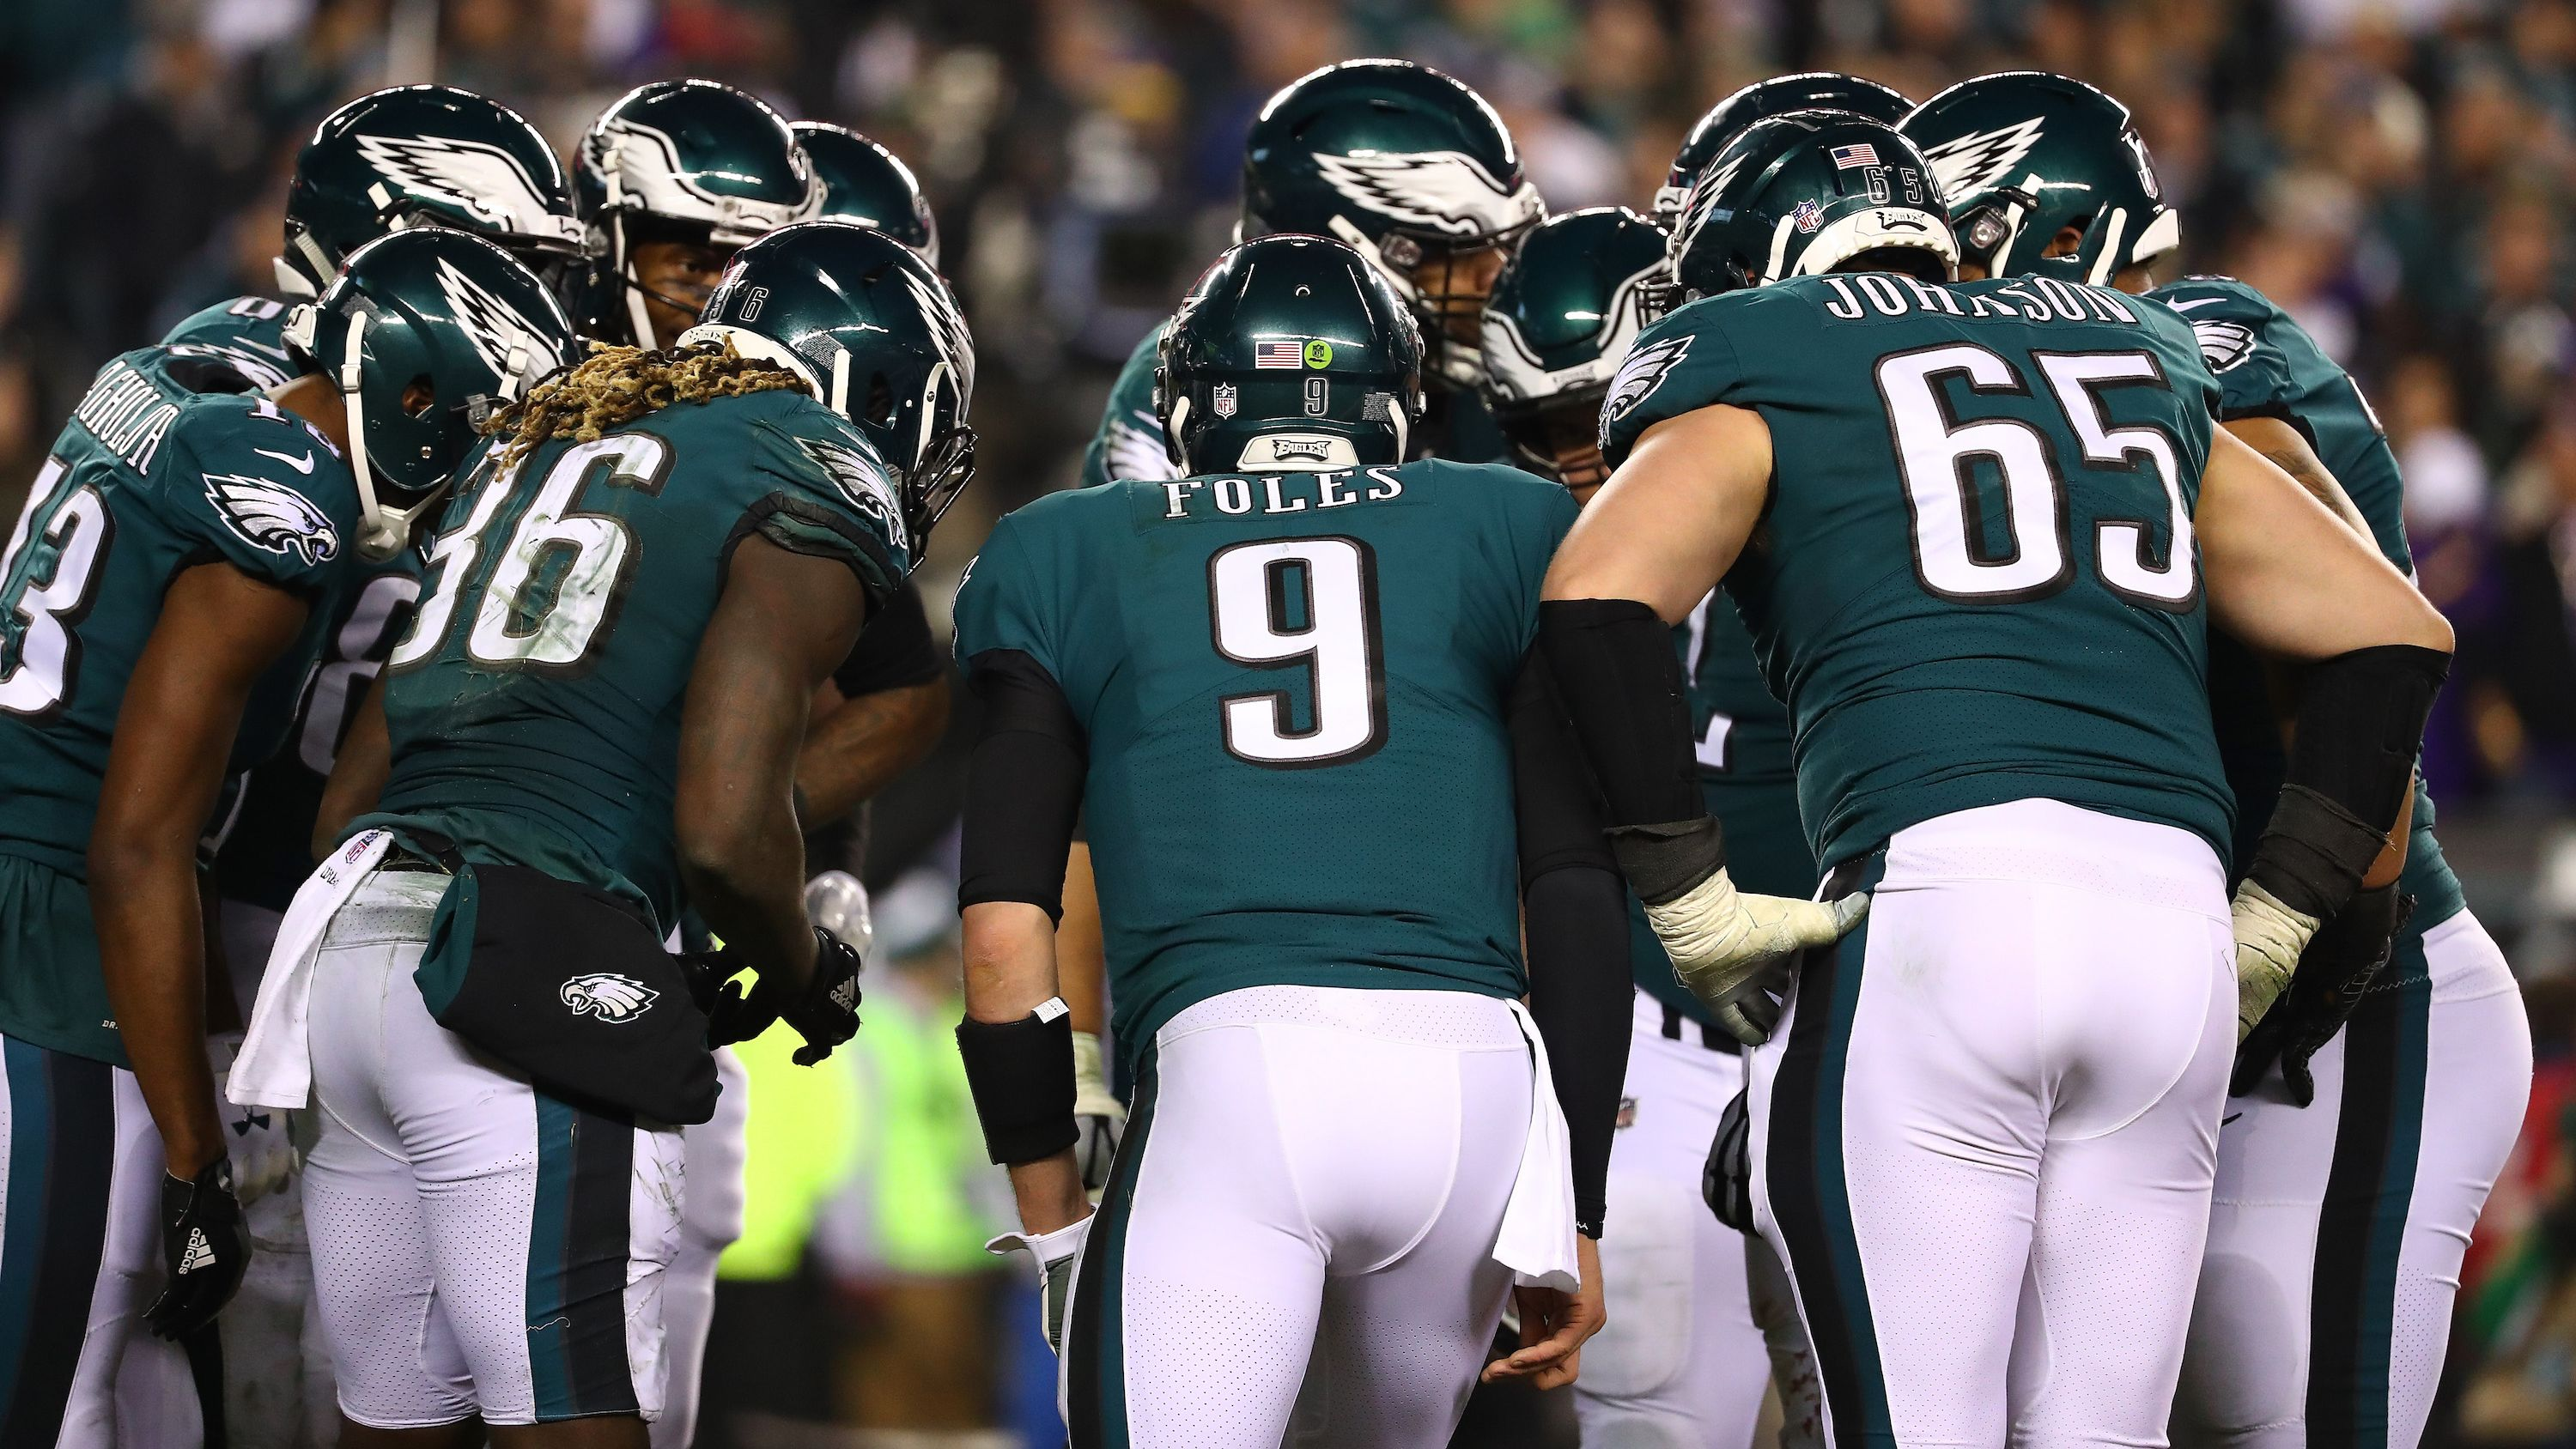 Facts About the Philadelphia Eagles